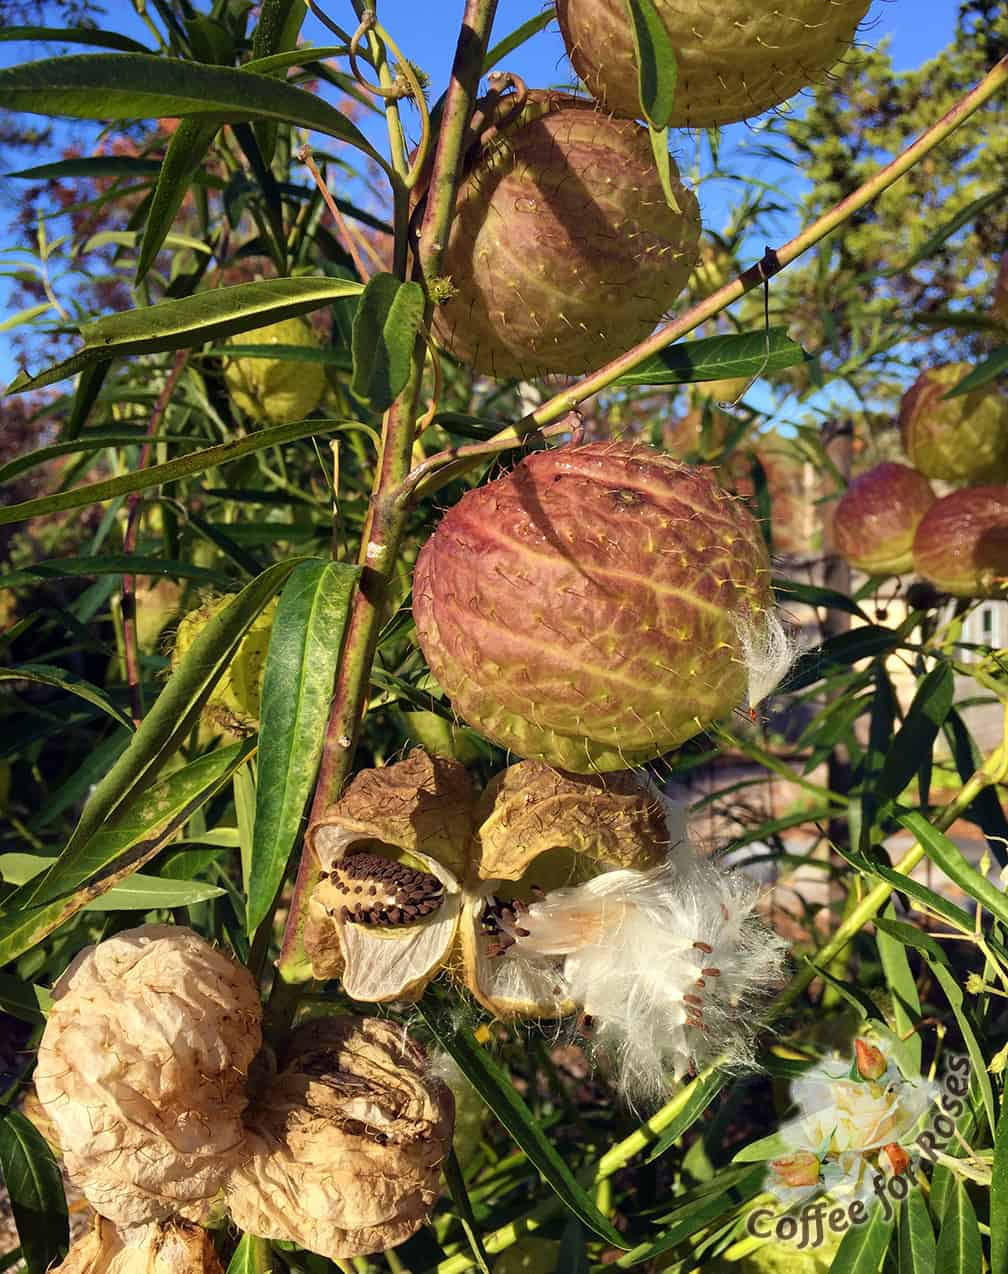 """Gomphocarpus physocarpus, aka """"fur balls"""" sails through the first frosts. The seeds burst out of the hairy pods and you immediately know that this annual is in the milkweed family. These pods dry well for indoor arrangements... and who can resist saying that they are growing """"hairy balls"""" in the garden?"""